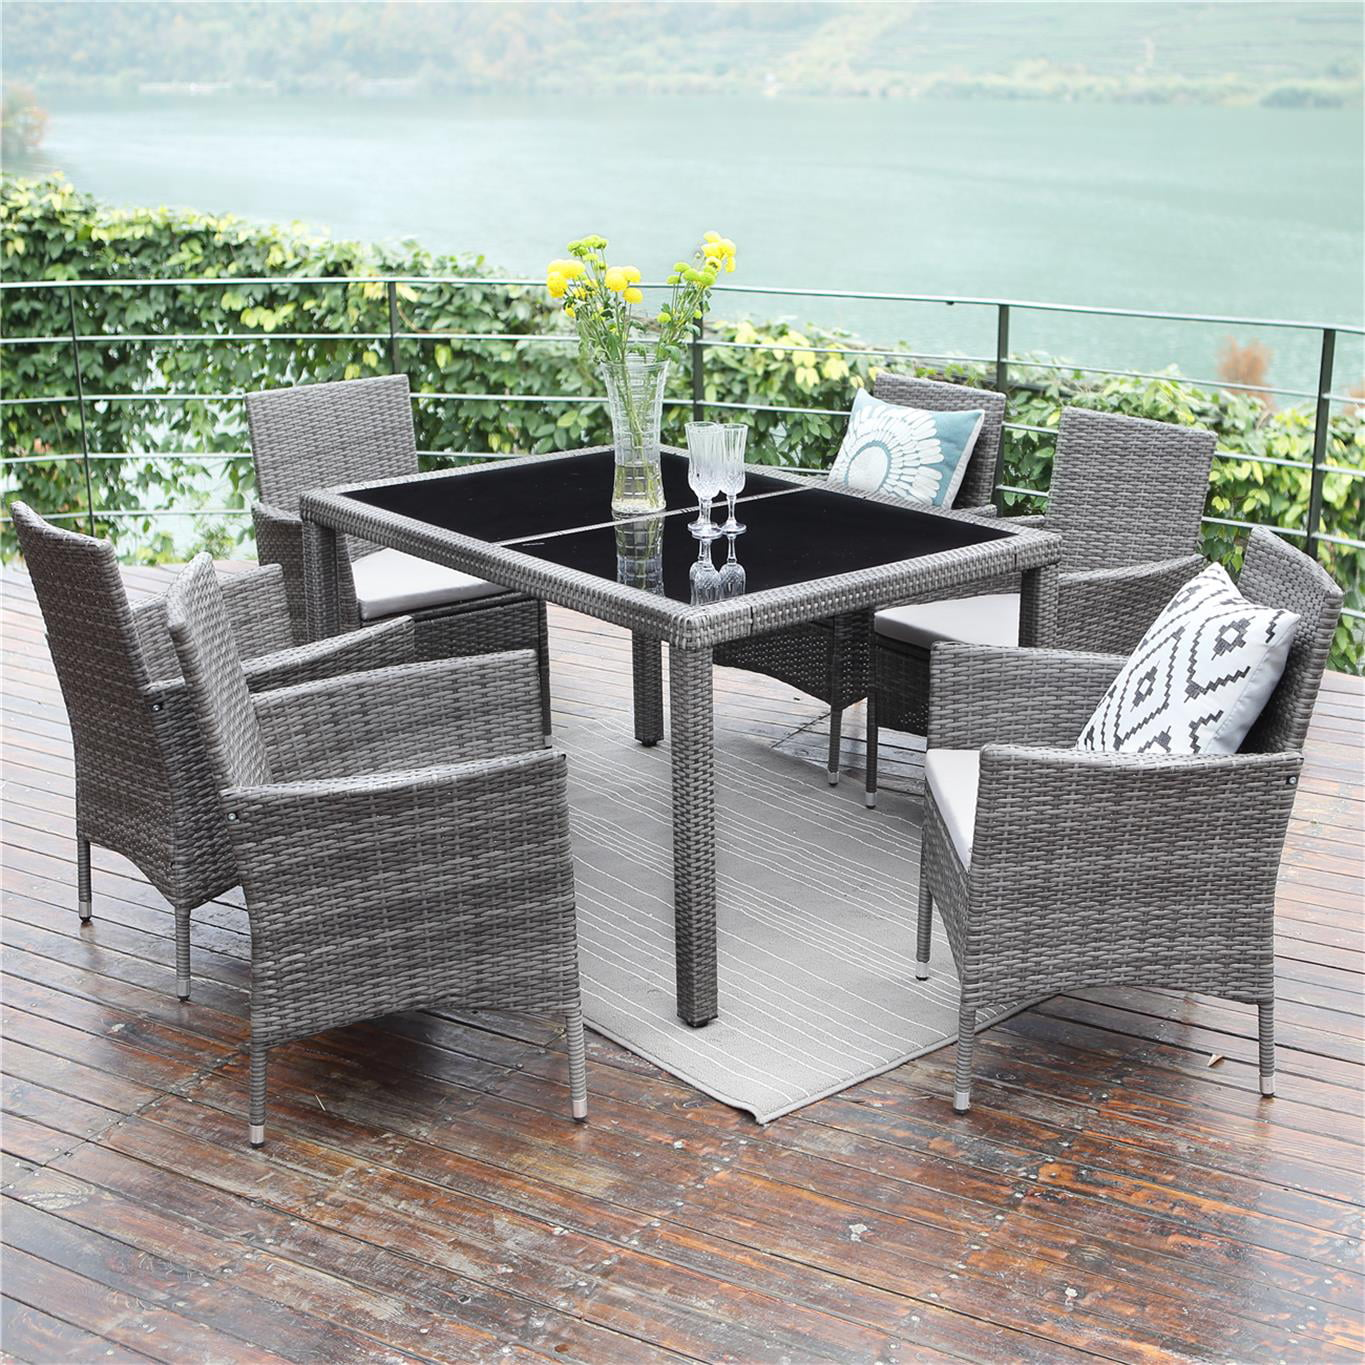 7 Piece Patio Wicker Dining Set Wisteria Lane Outdoor Rattan Furniture Gl Table Cushioned Chair Grey